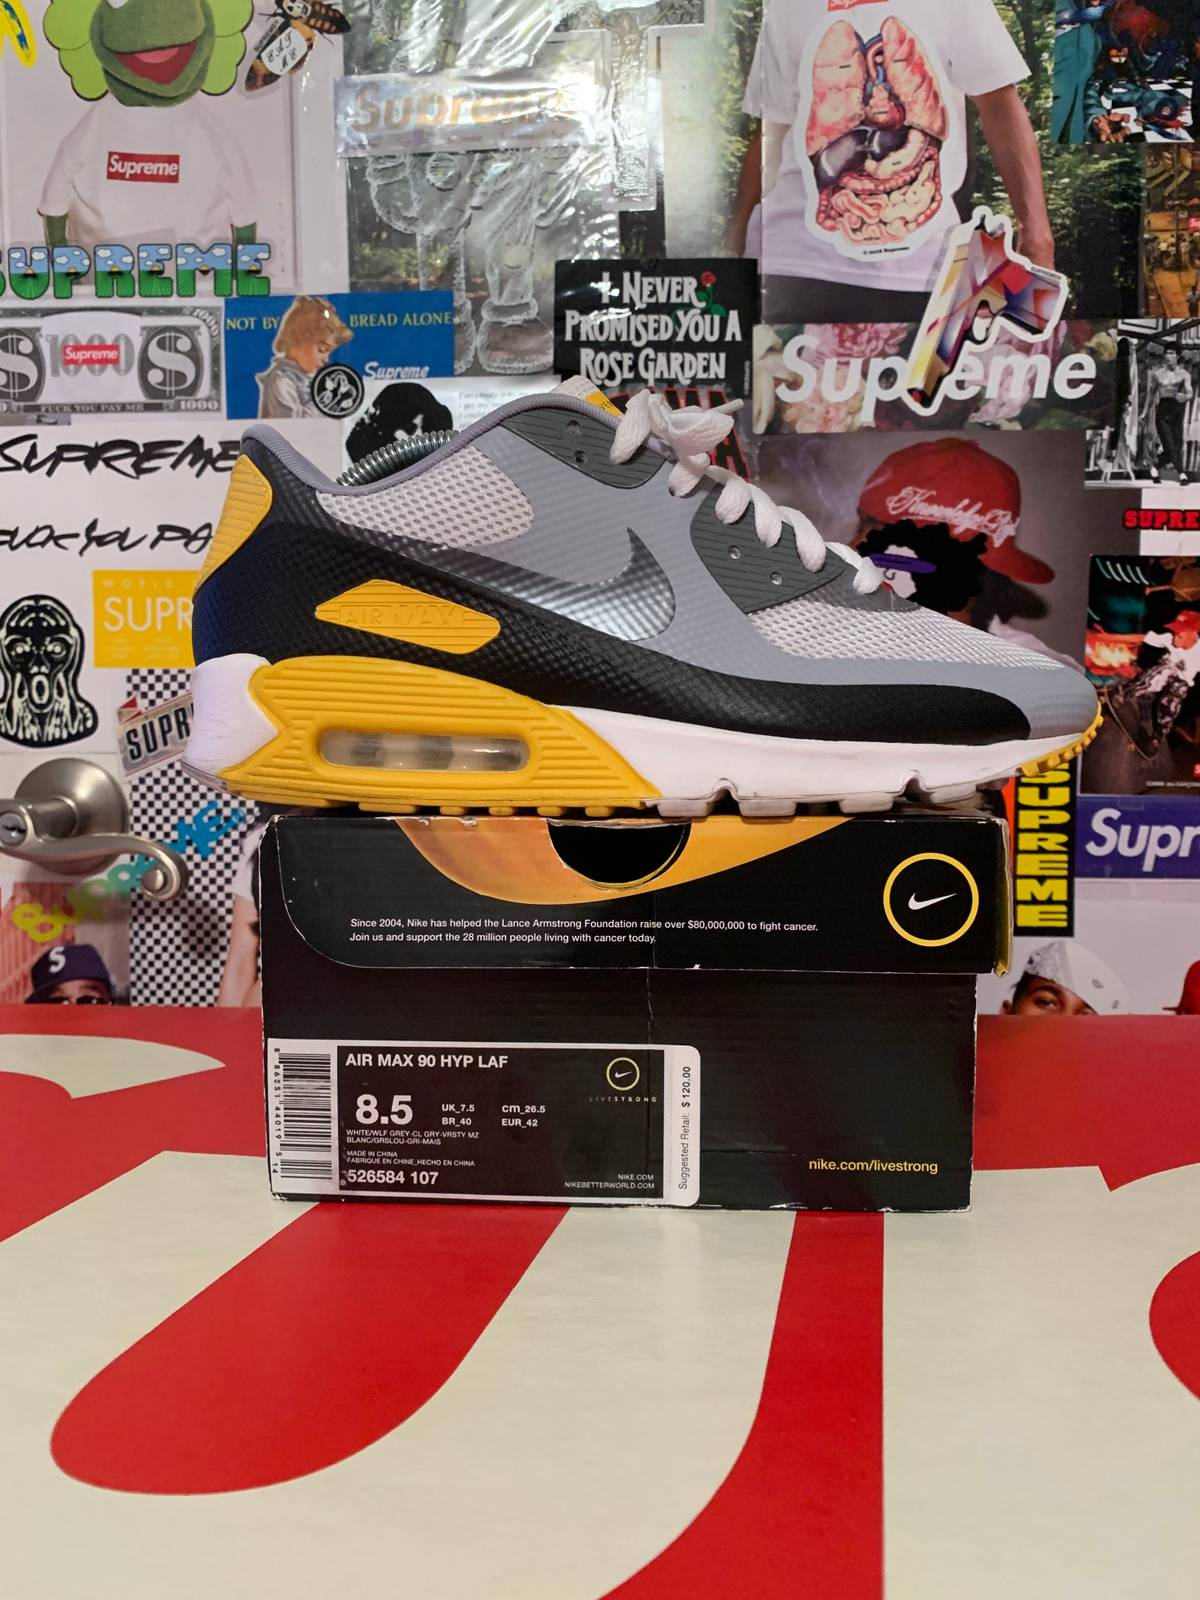 Nike Nike Air Max 90 Hyperfuse Livestrong Size 8.5 Size 8.5 $135